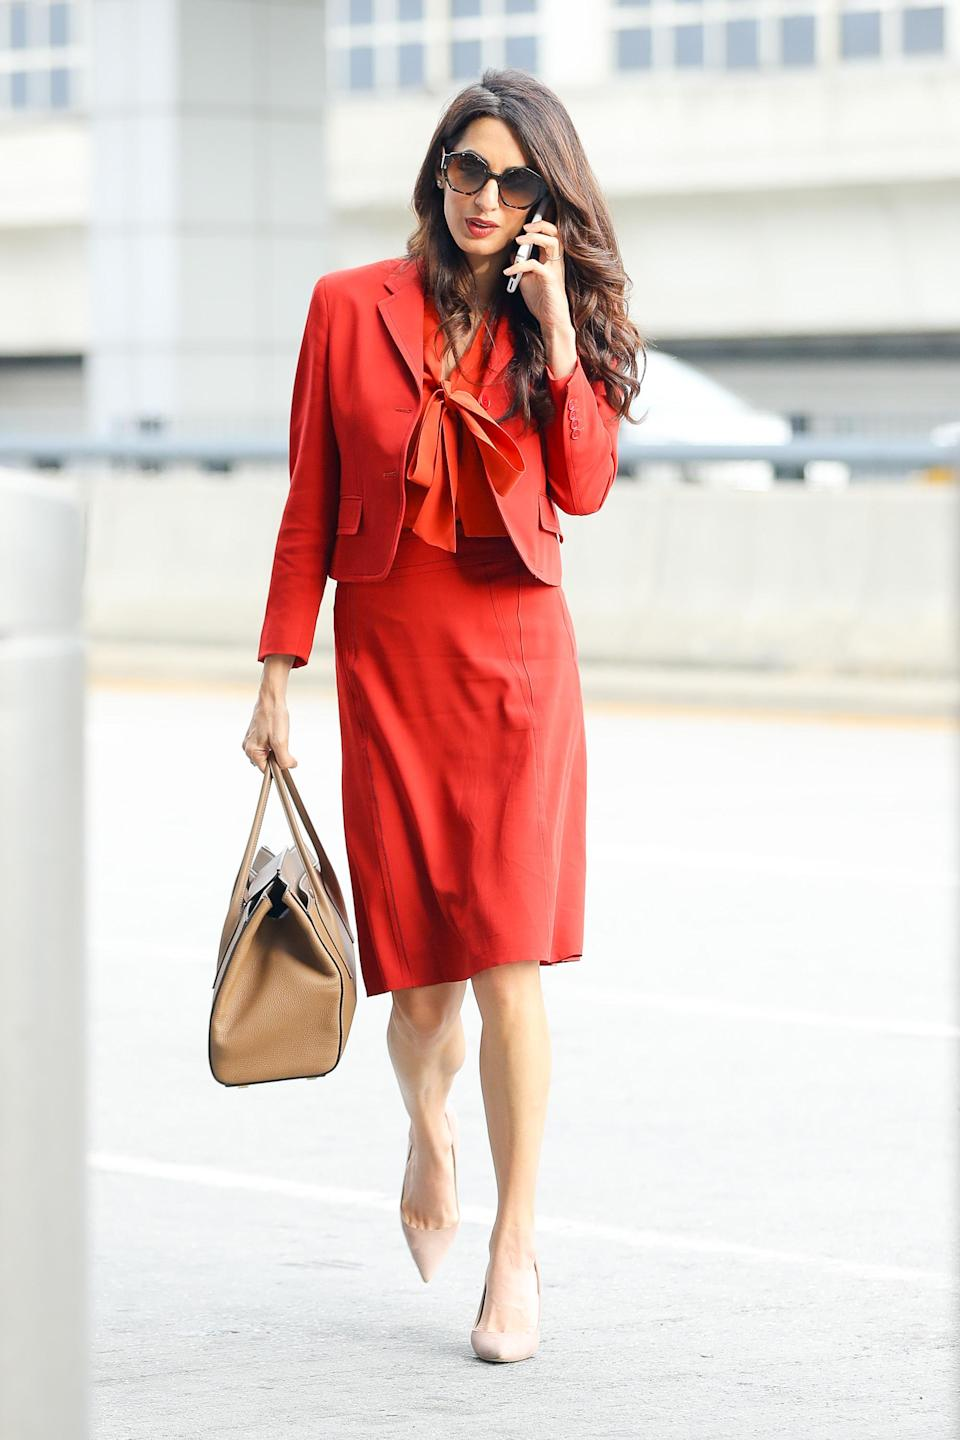 <p><strong>When: September 21, 2017</strong><br>Hiding coyly behind oversized sunglasses, the 39-year-old human rights lawyer showcased her amazing figure in a knee-length red Bottega Veneta skirt suit complemented with a pussy-bow blouse. Her long wavy locks ran loose down her back as she strutted the street in nude Manolo Blahnik pumps and carried an oversized Michael Kors purse. <em>(Photo: Splash News)</em> </p>